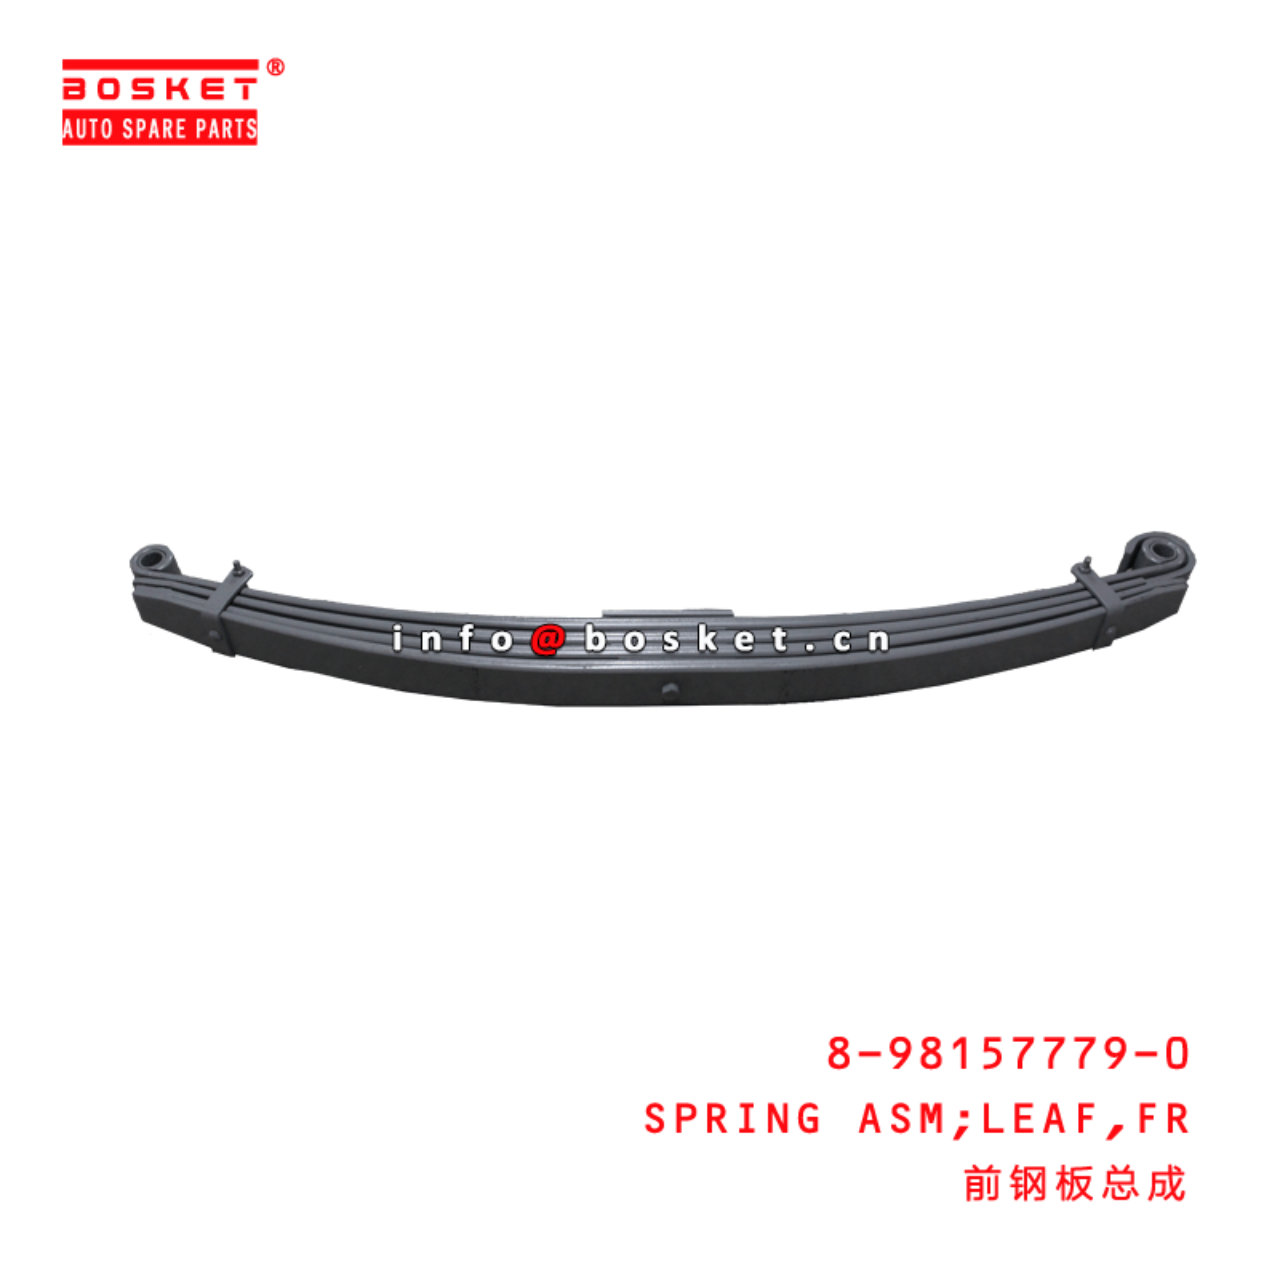 8-98122695-0 8-98021859-0 Front Panel Assembly 8981226950 8980218590 Suitable for ISUZU NPR75 NLR85